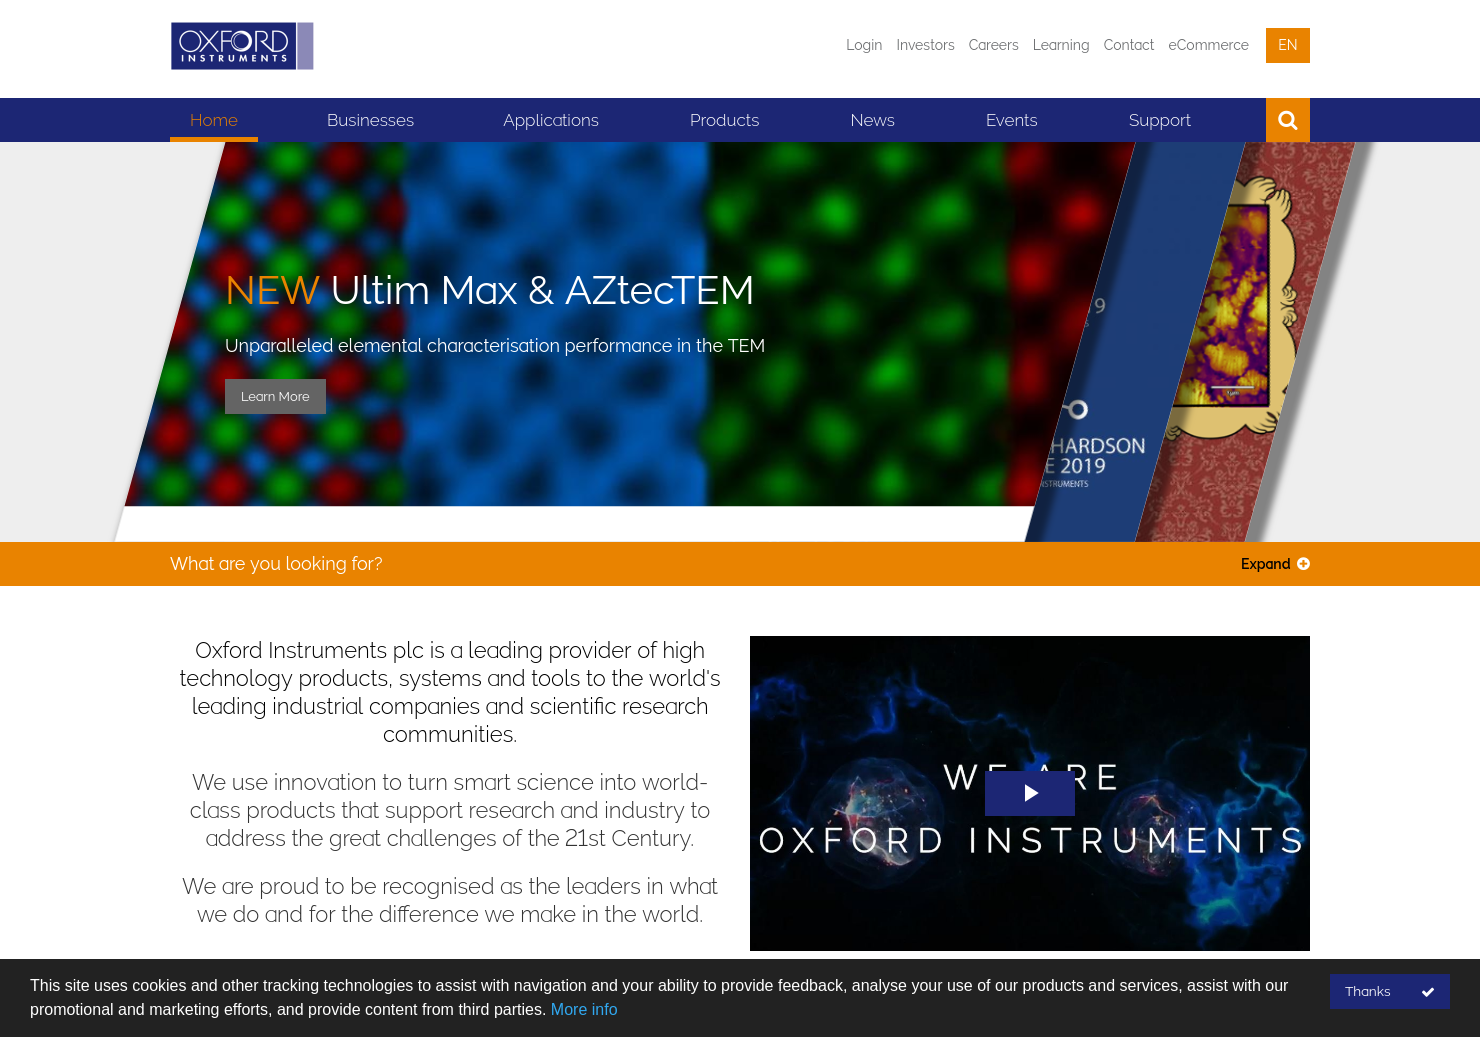 Oxford Instruments Home Page